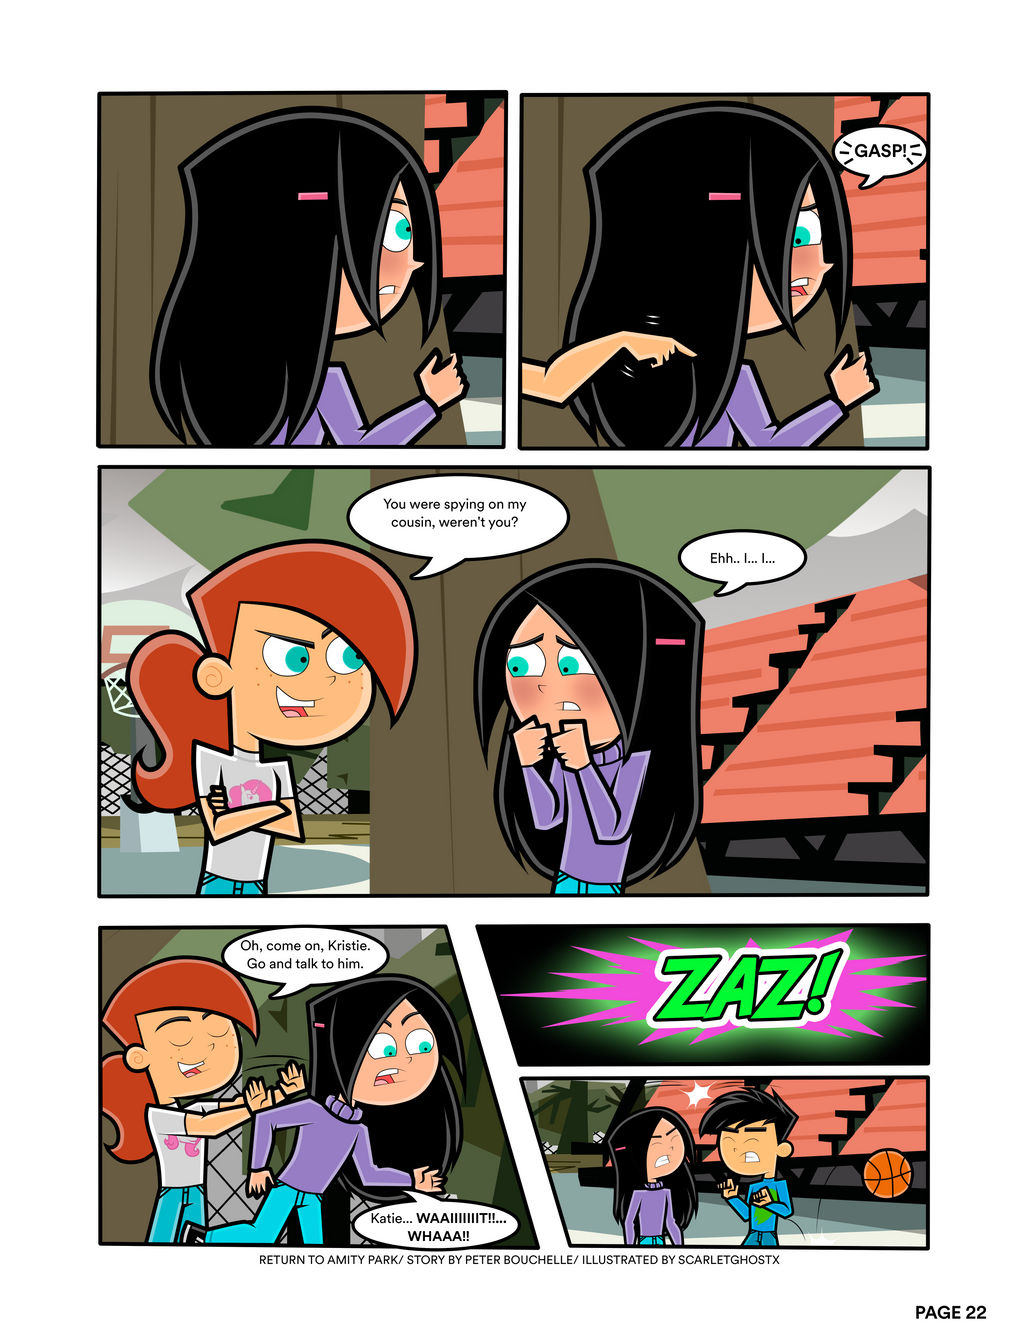 Return To Amity Park Page 22 By Scarletghostx On Deviantart 405 mb publication type cracked by 3dm release date : return to amity park page 22 by